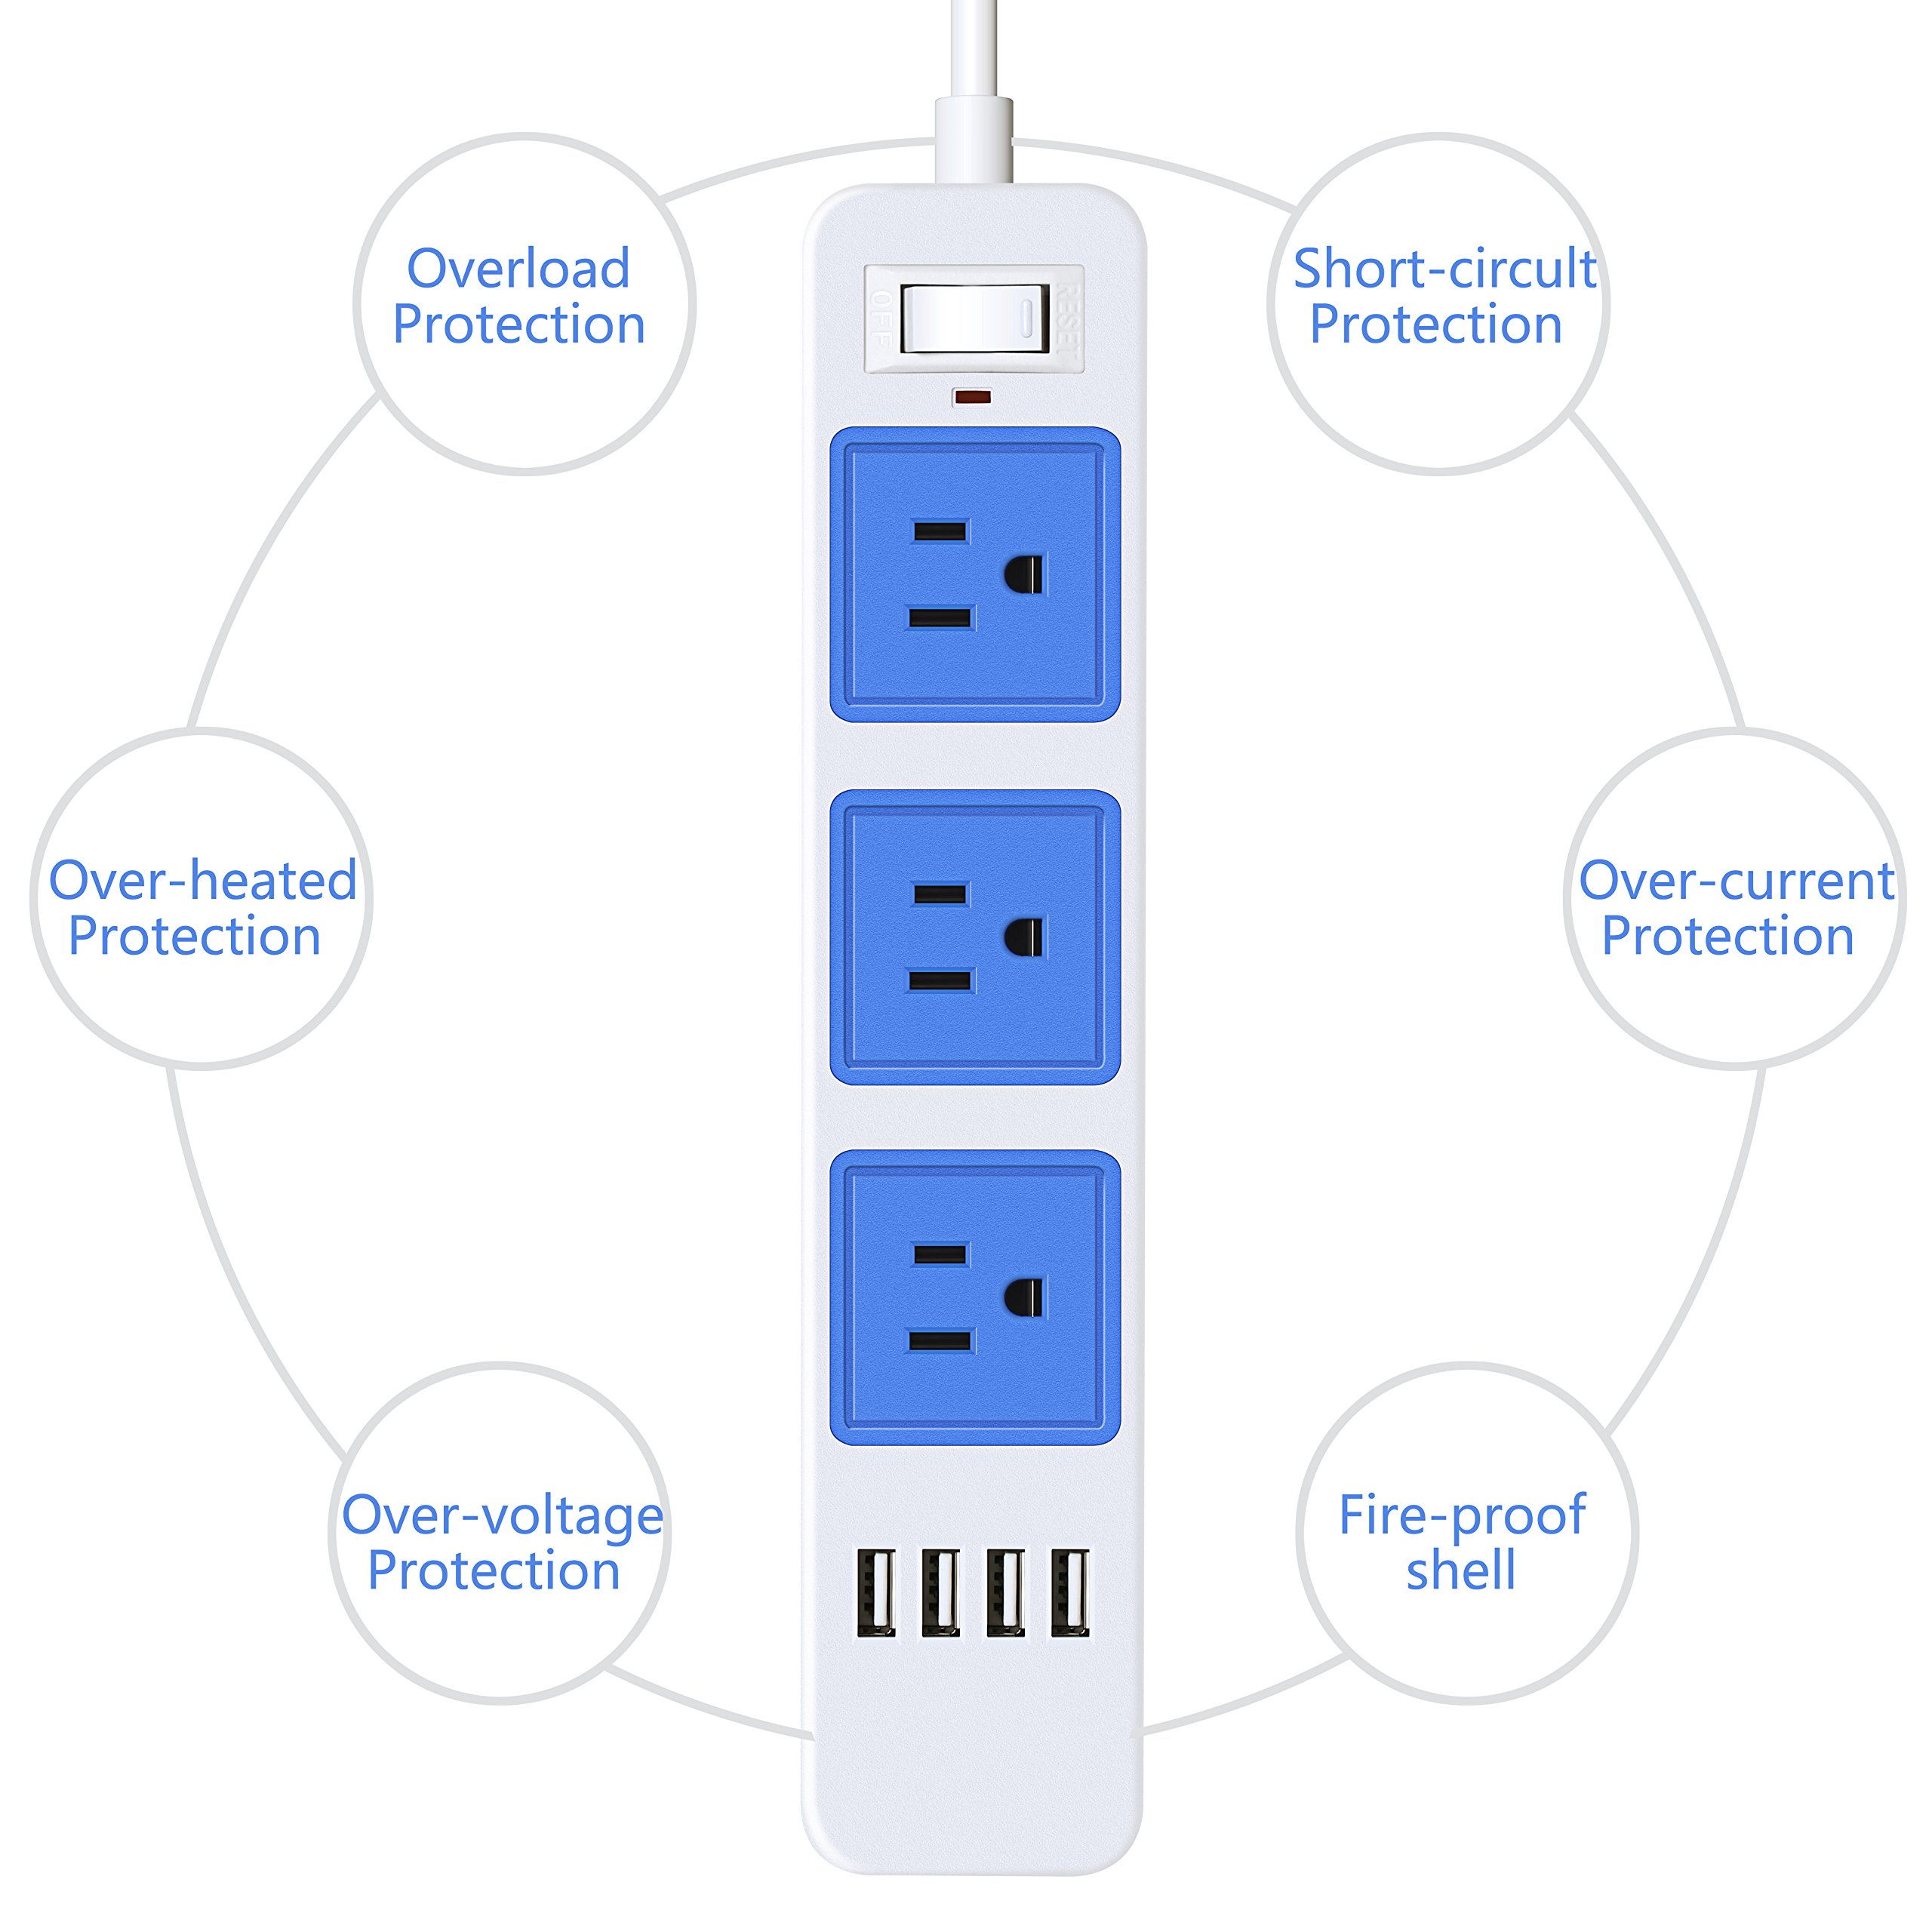 ZXpower USB Power Strip with 3 AC Outlets, 4 USB Charging Ports and 6.5Ft Cord for Home Office Travel (Blue) by ZXpower (Image #2)